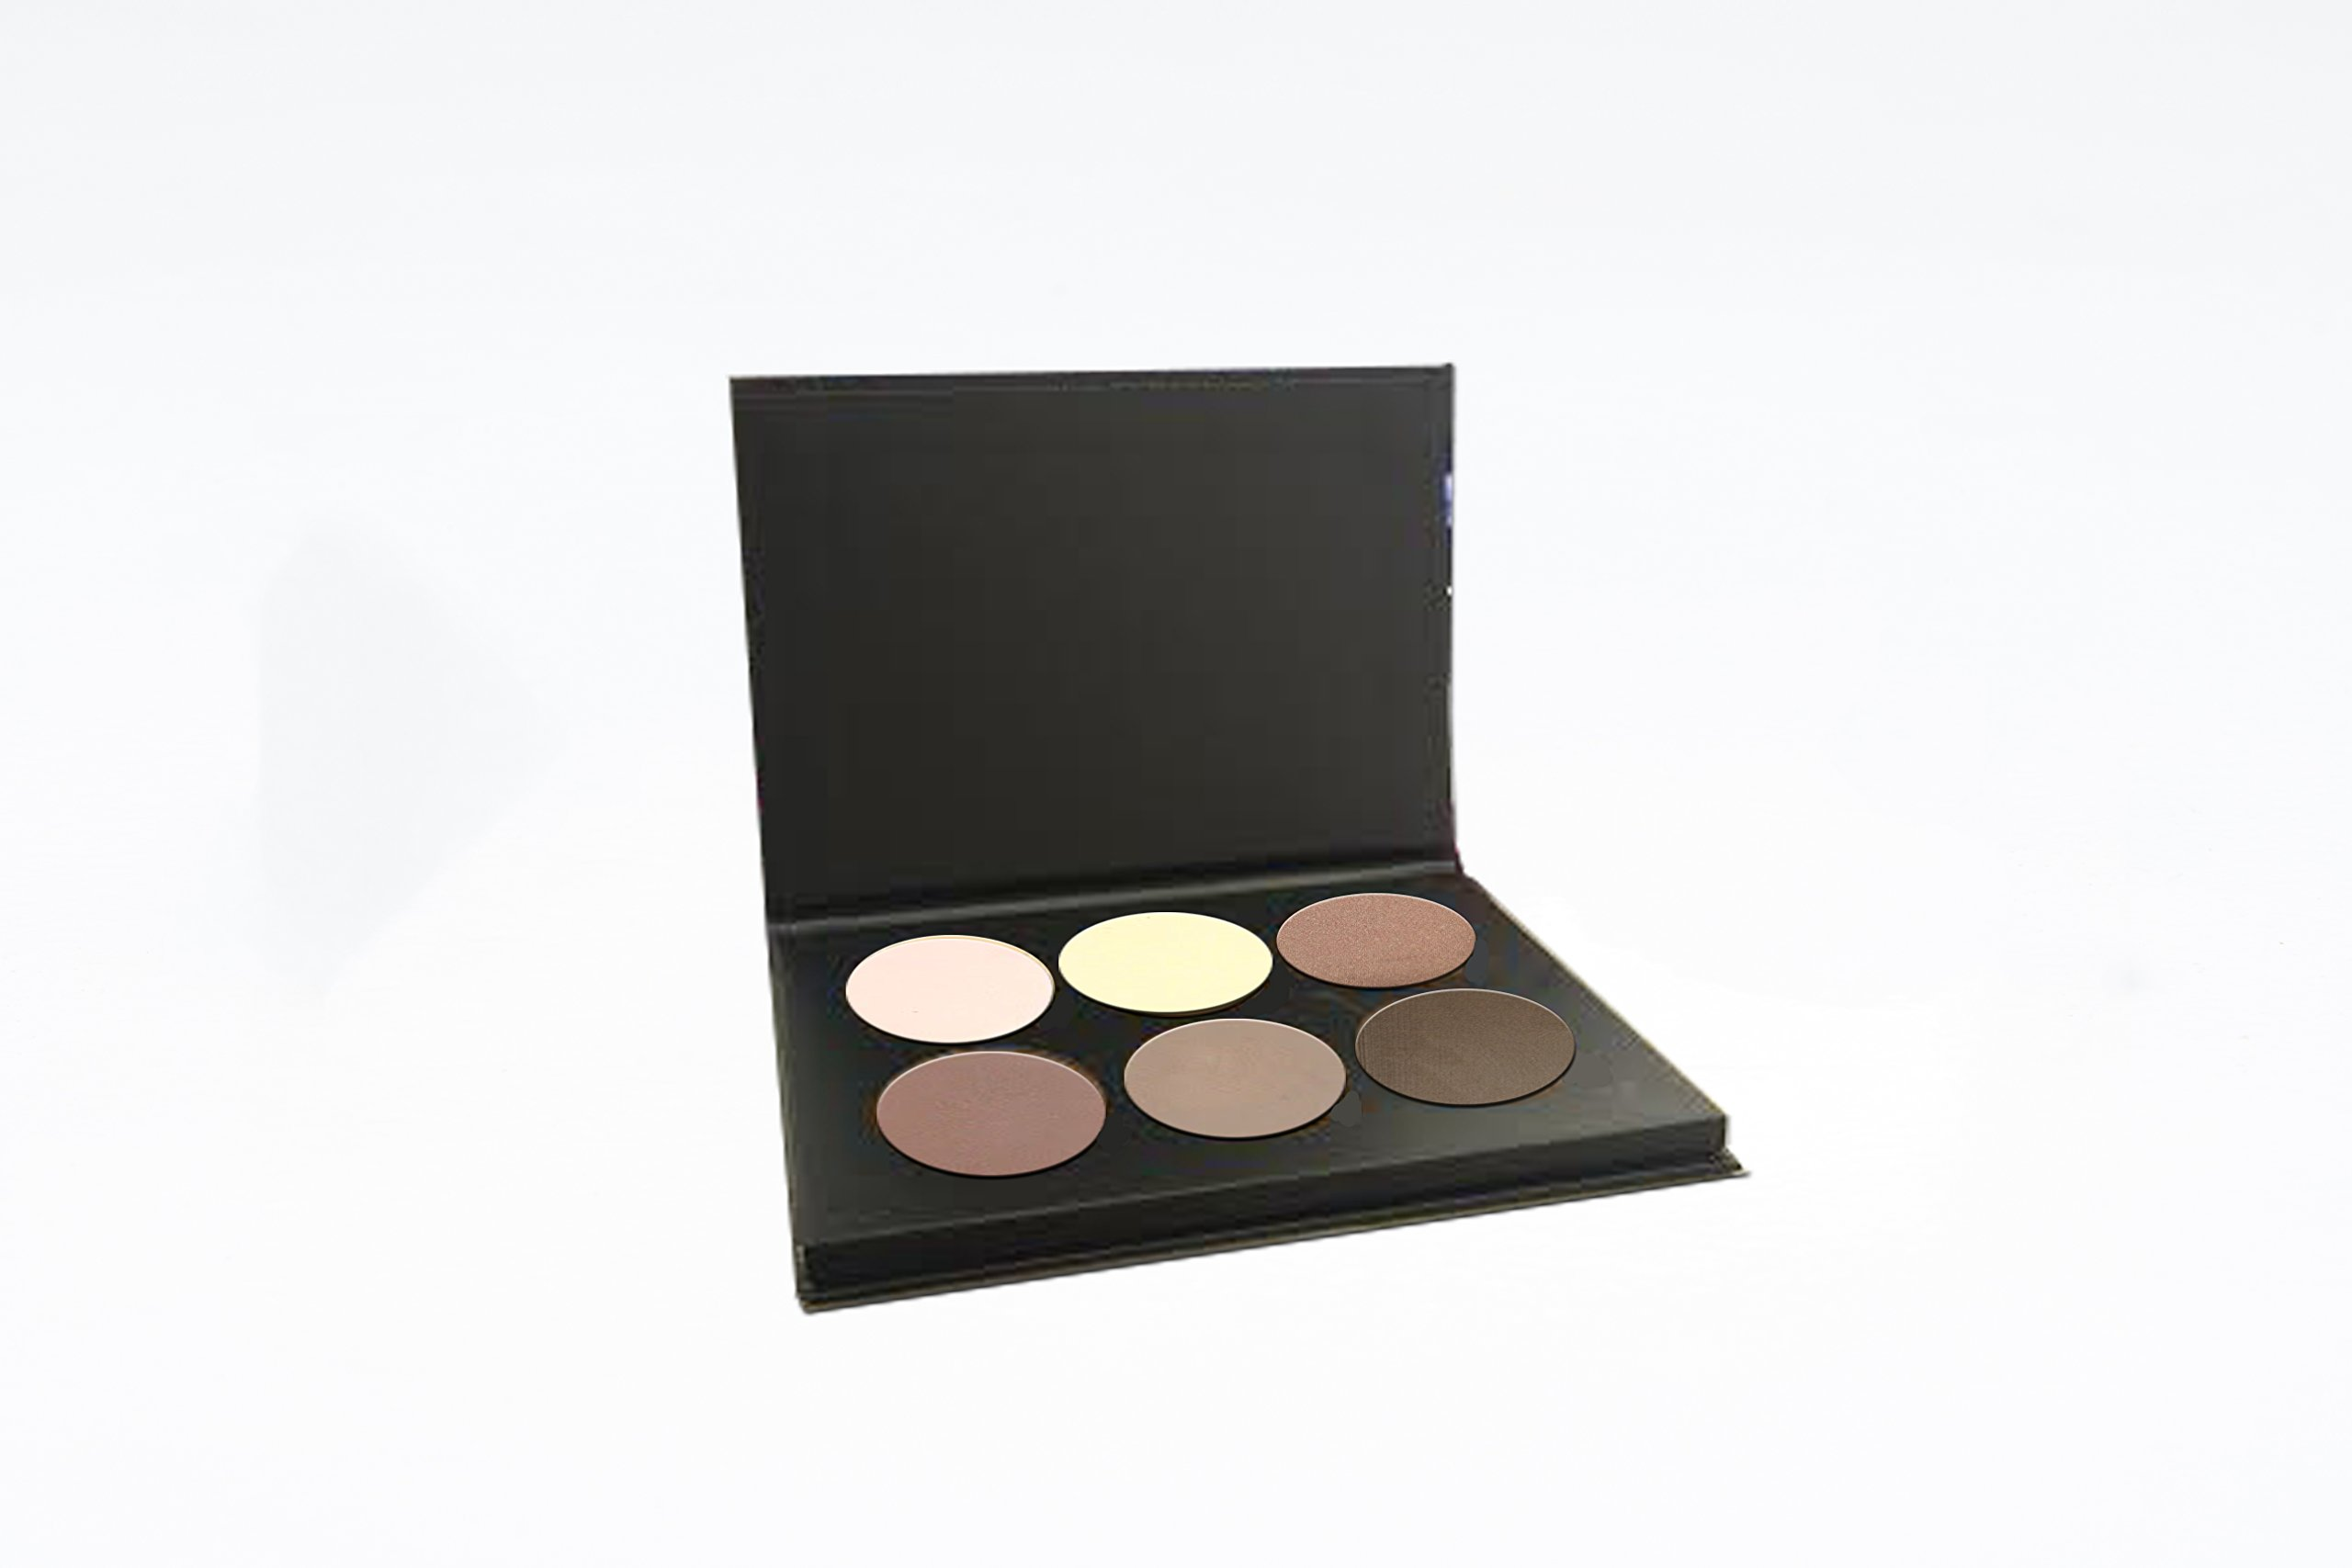 Pure Cosmetics Contour Make Up Kit